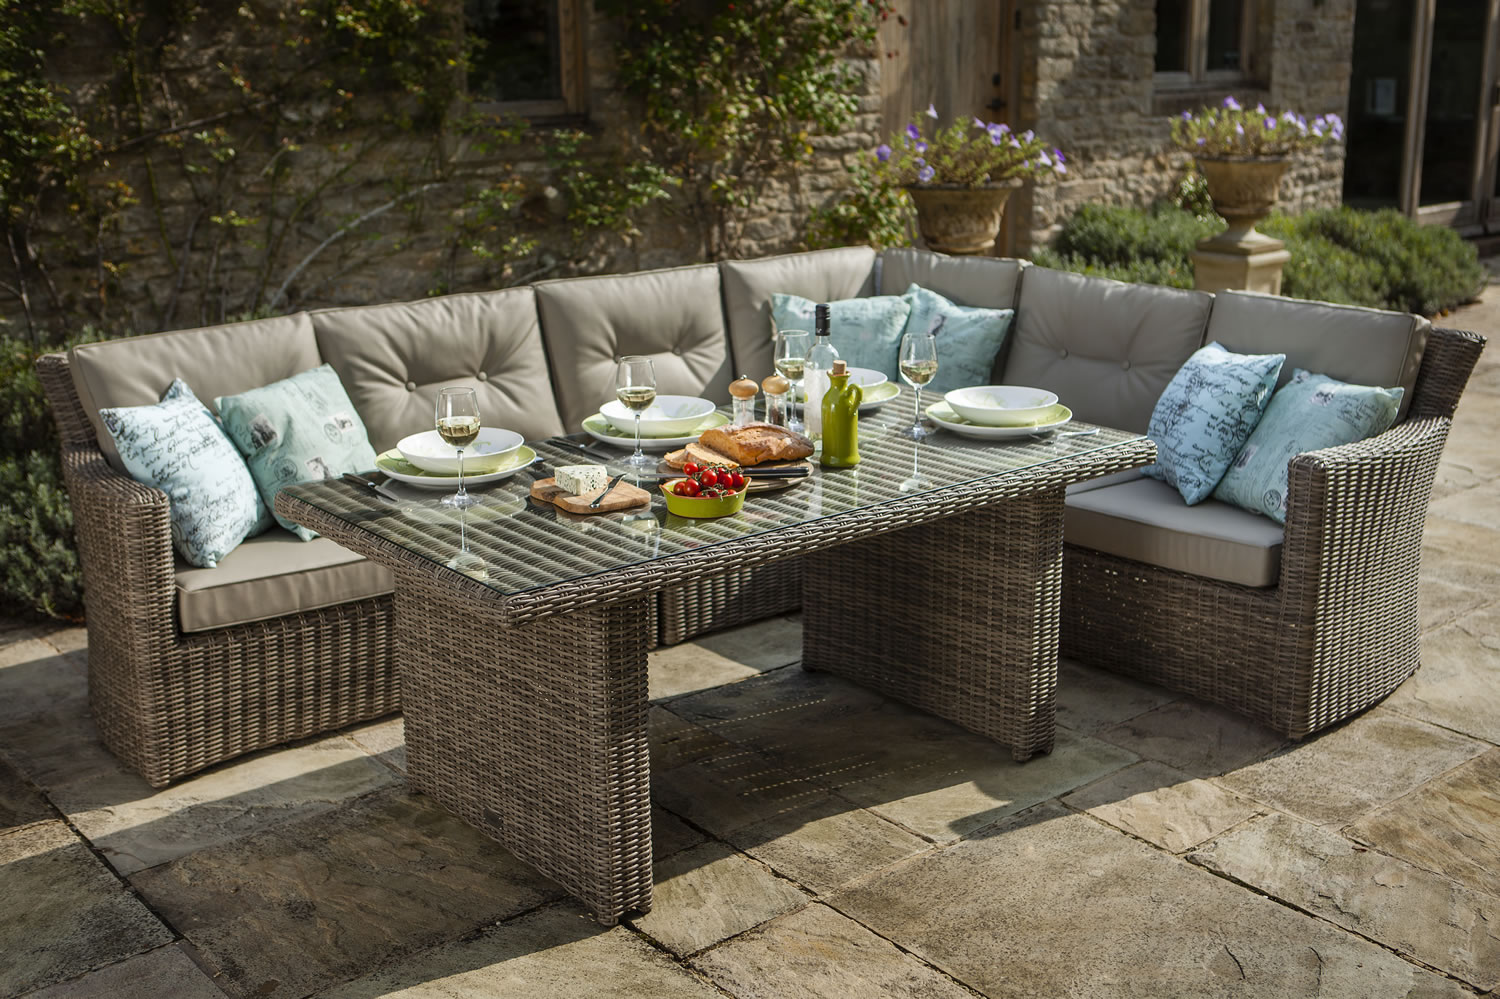 Java Casual Dining Rattan Furniture Set By Hartman 1390 Garden4Less UK Shop